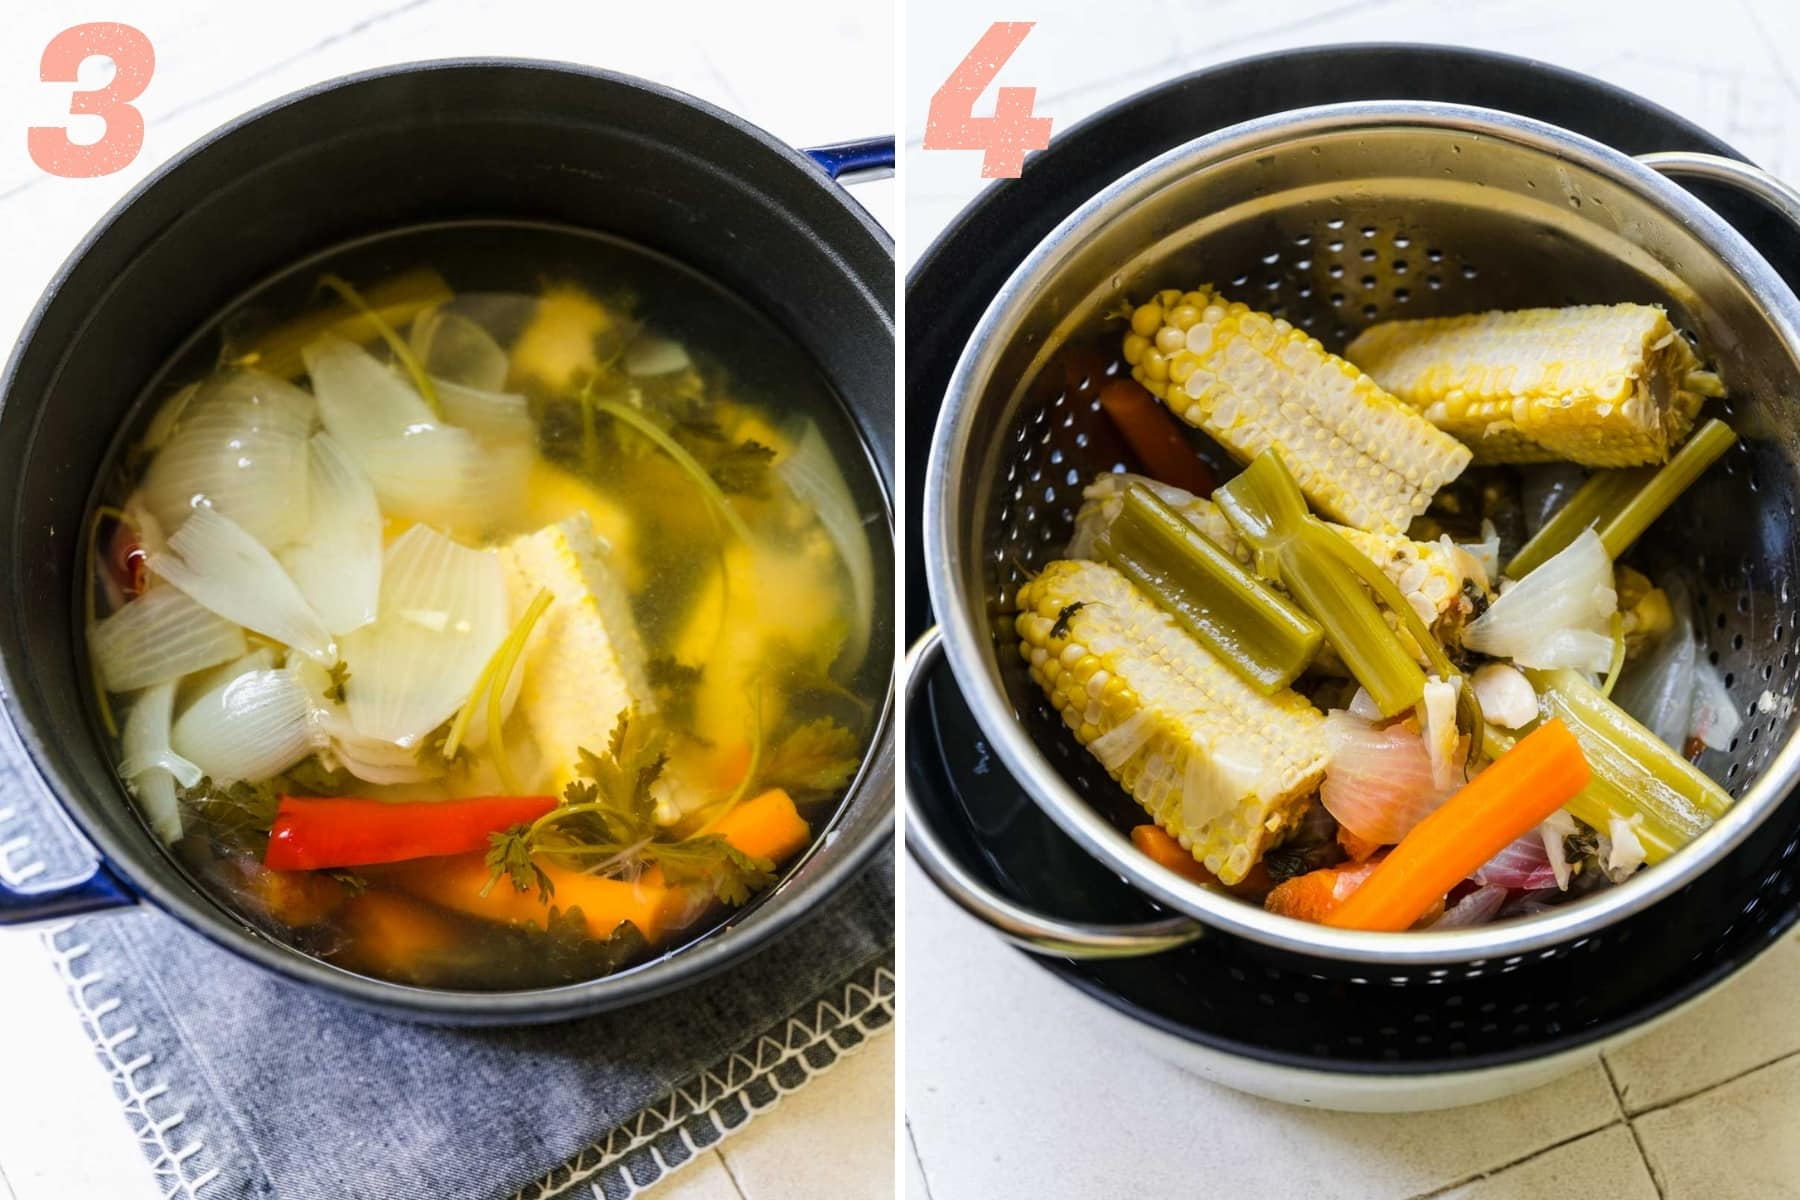 before and after straining homemade corn stock.